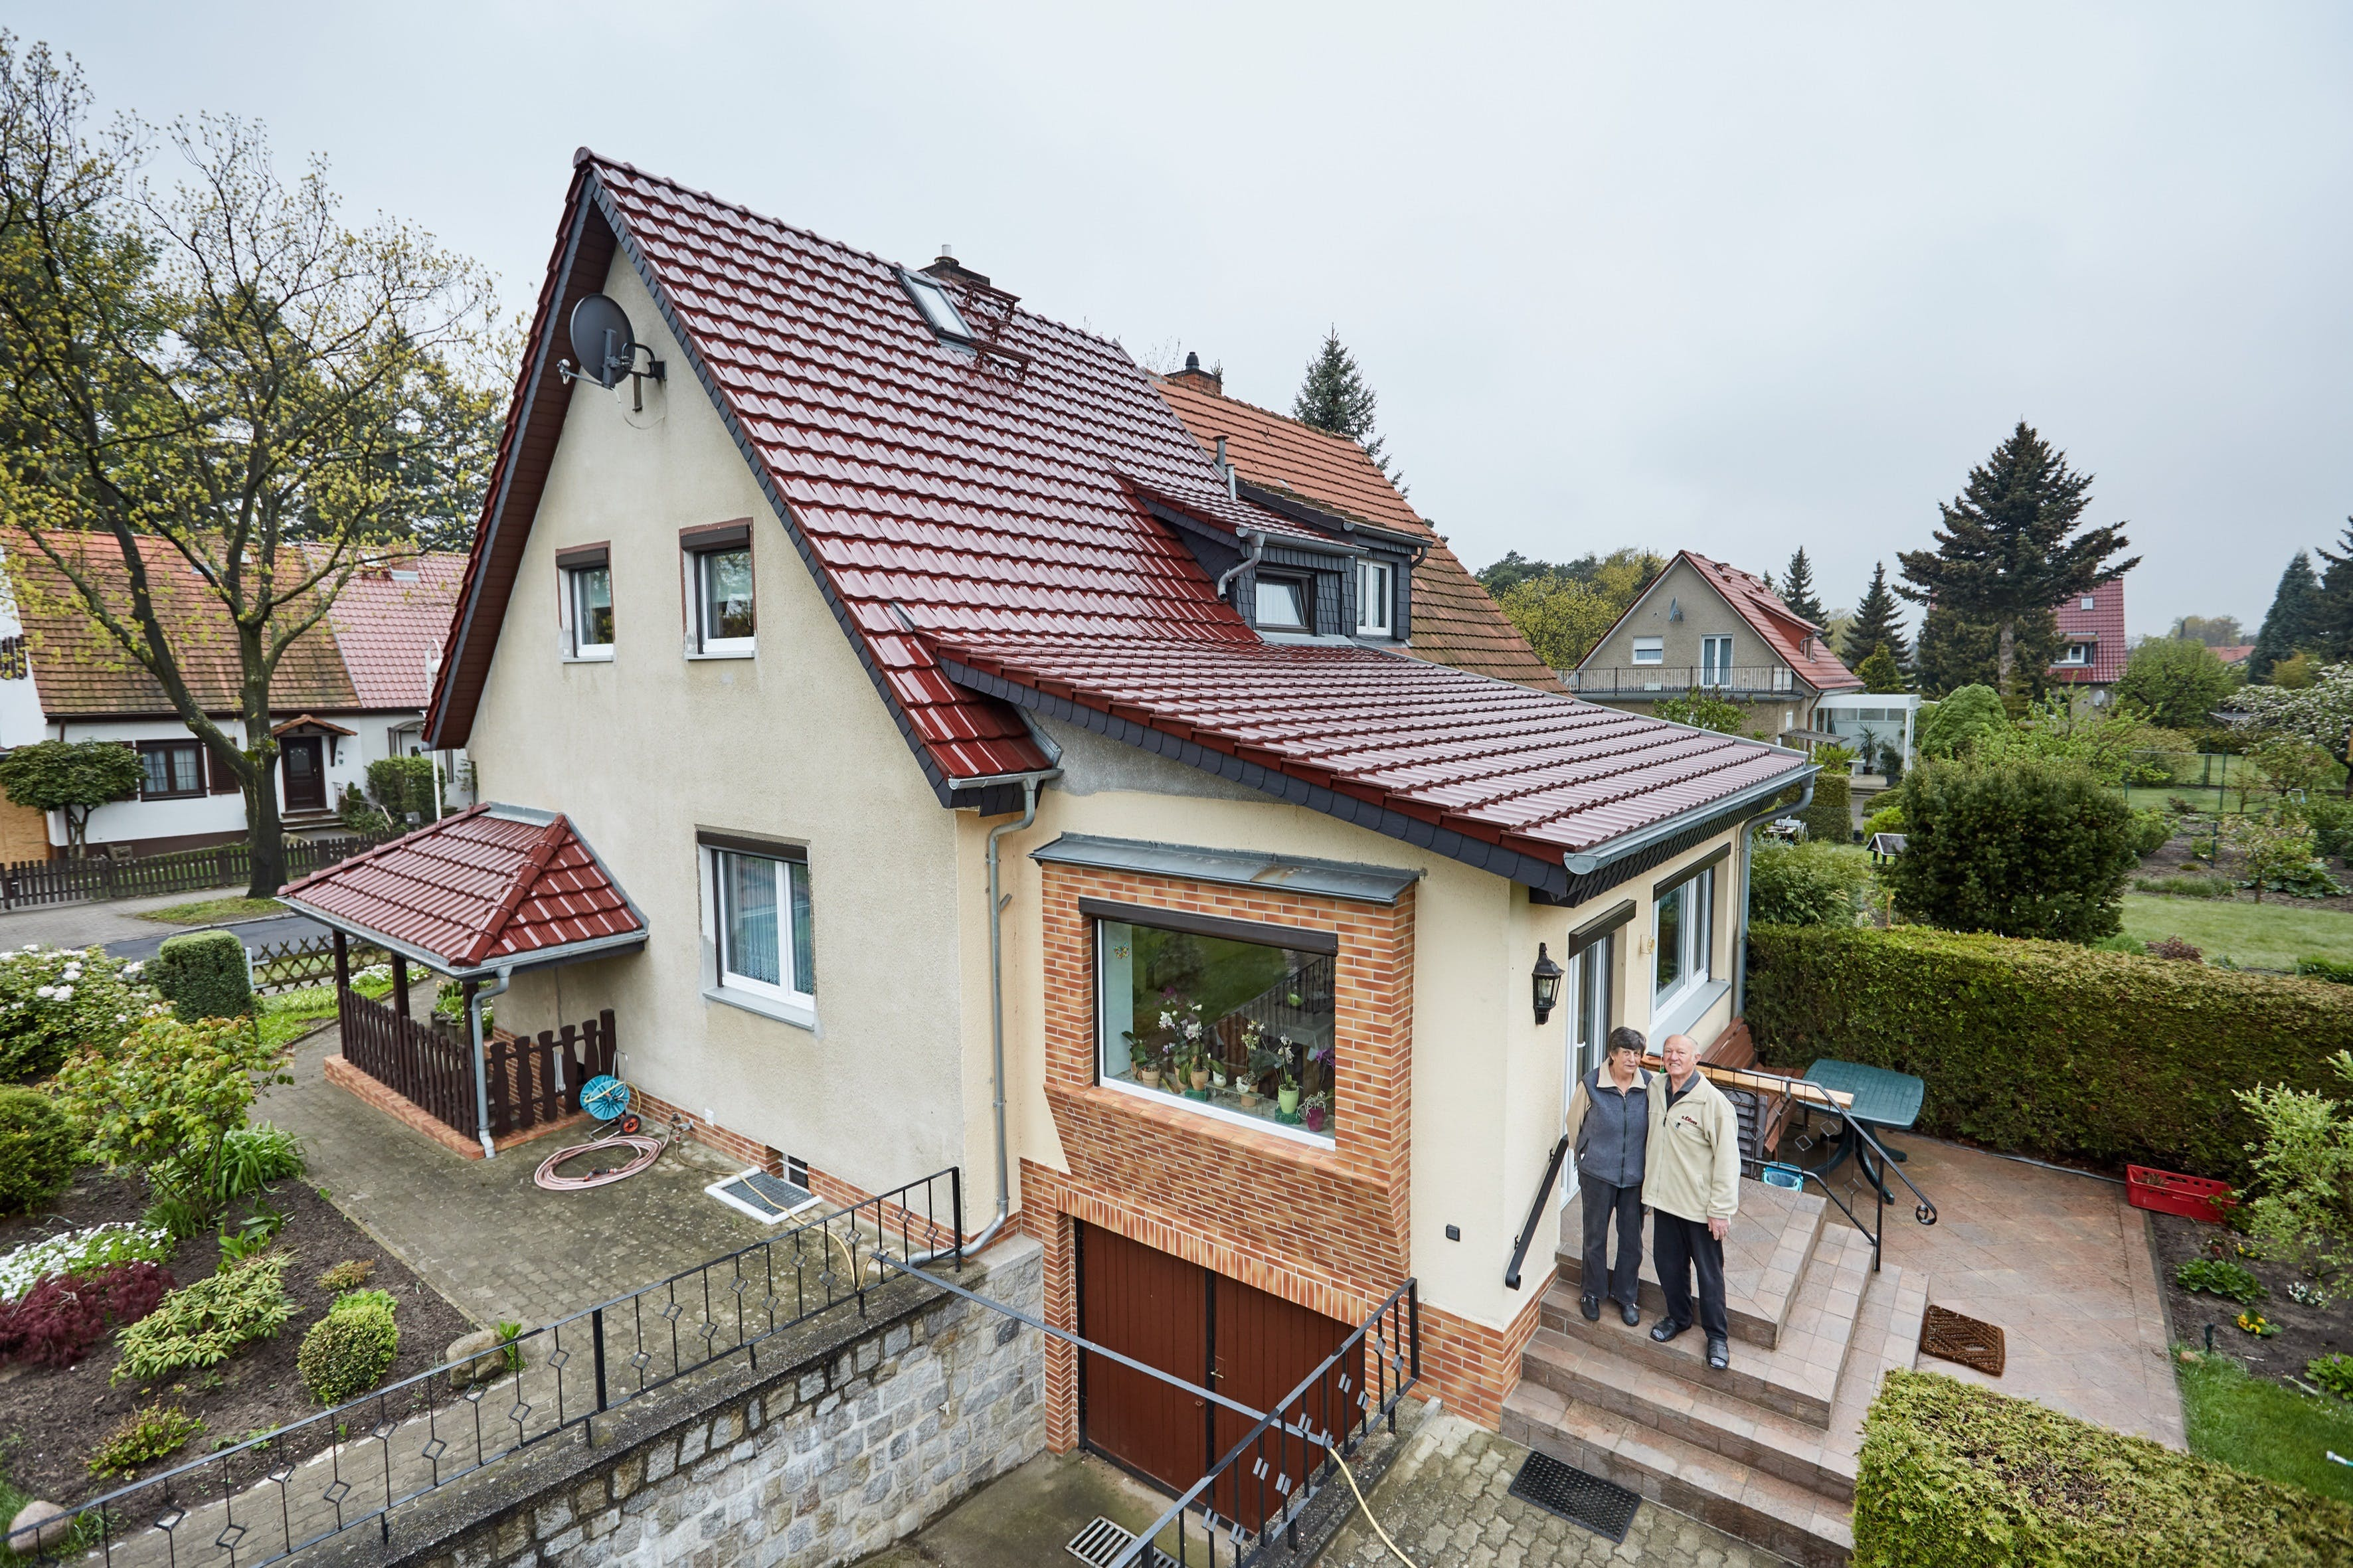 reference, single family home, single family house, single-family home, single-family house, renovation, noise, noise protection, acoustics, testimonials, airport, fluglärm, airport berlin, flughafen ber, germany, job 4964